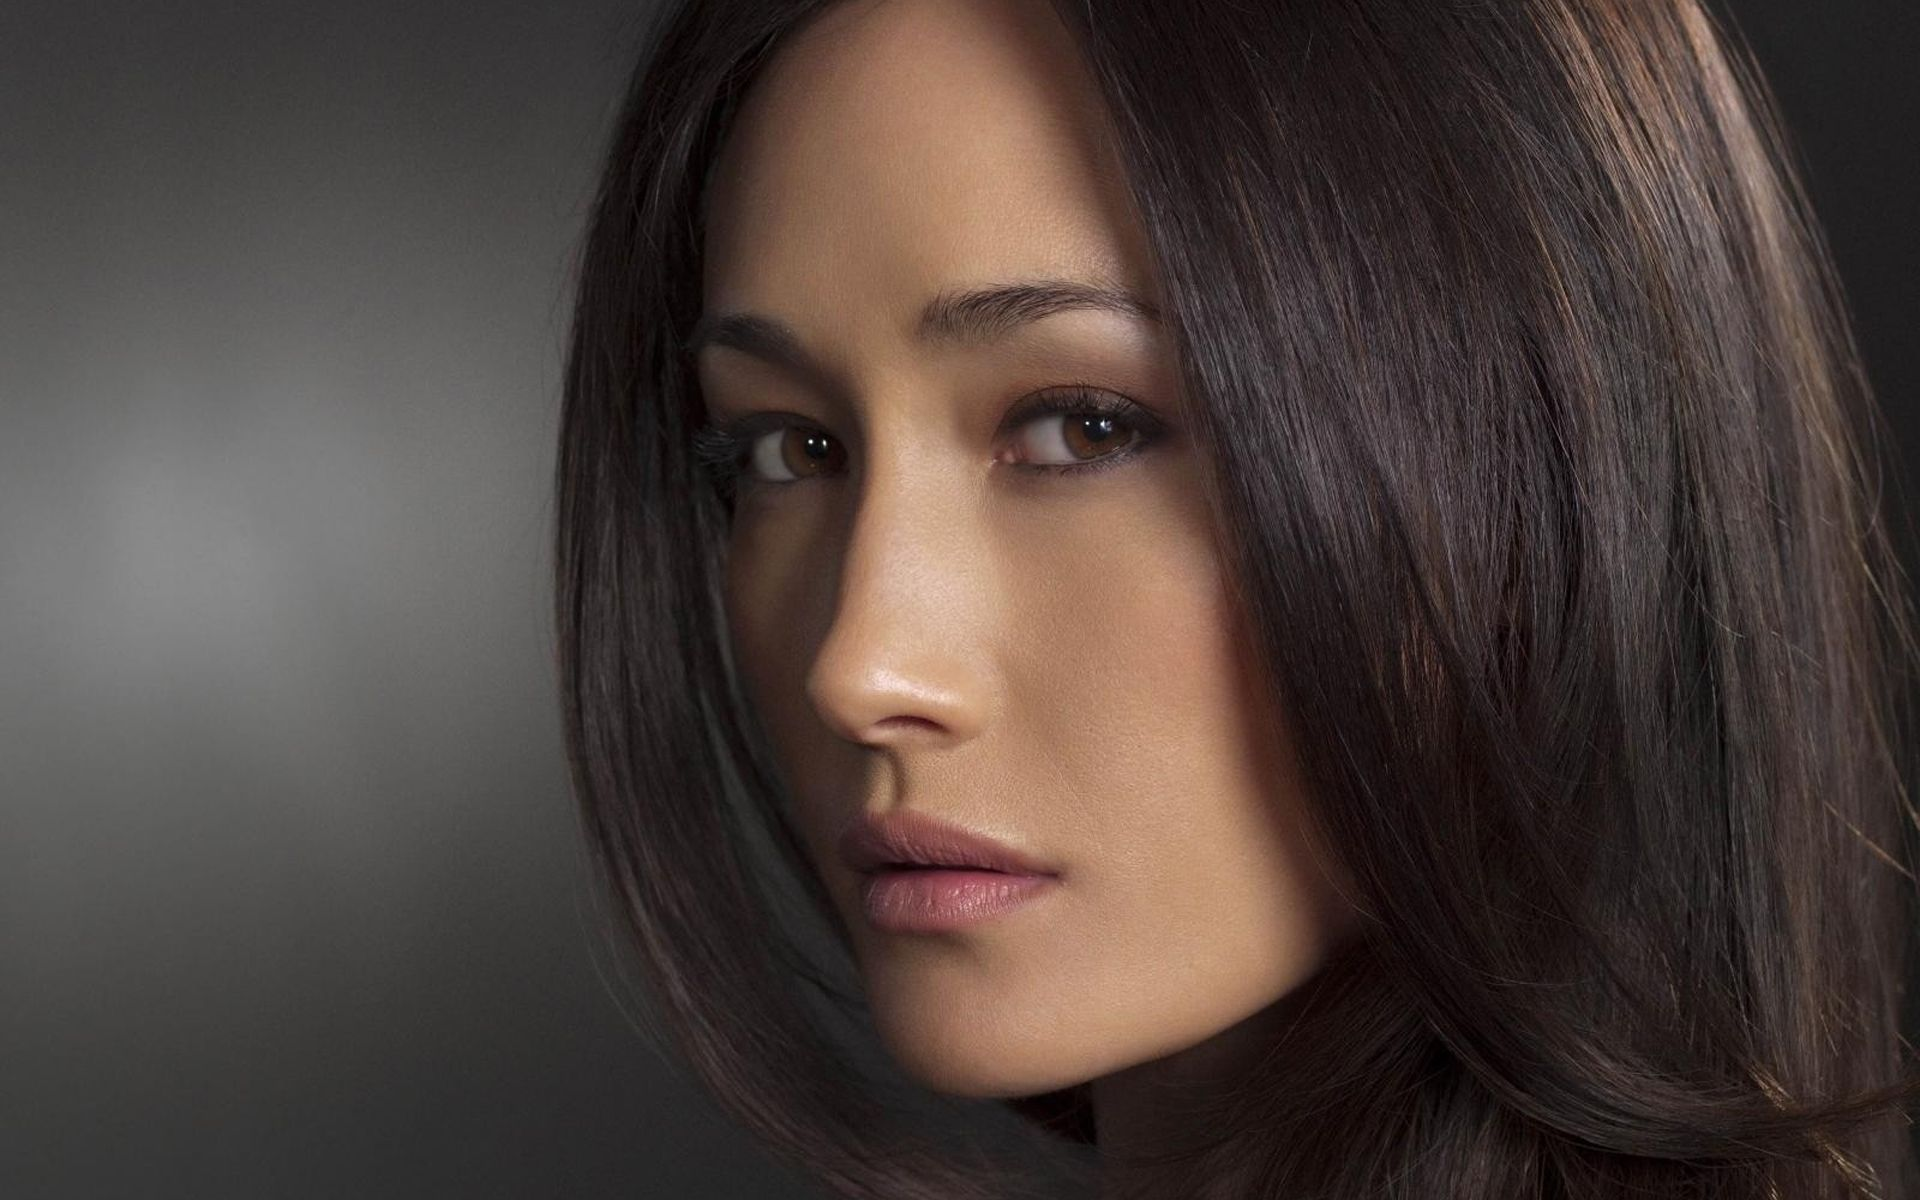 1920x1200 - Maggie Q Wallpapers 25